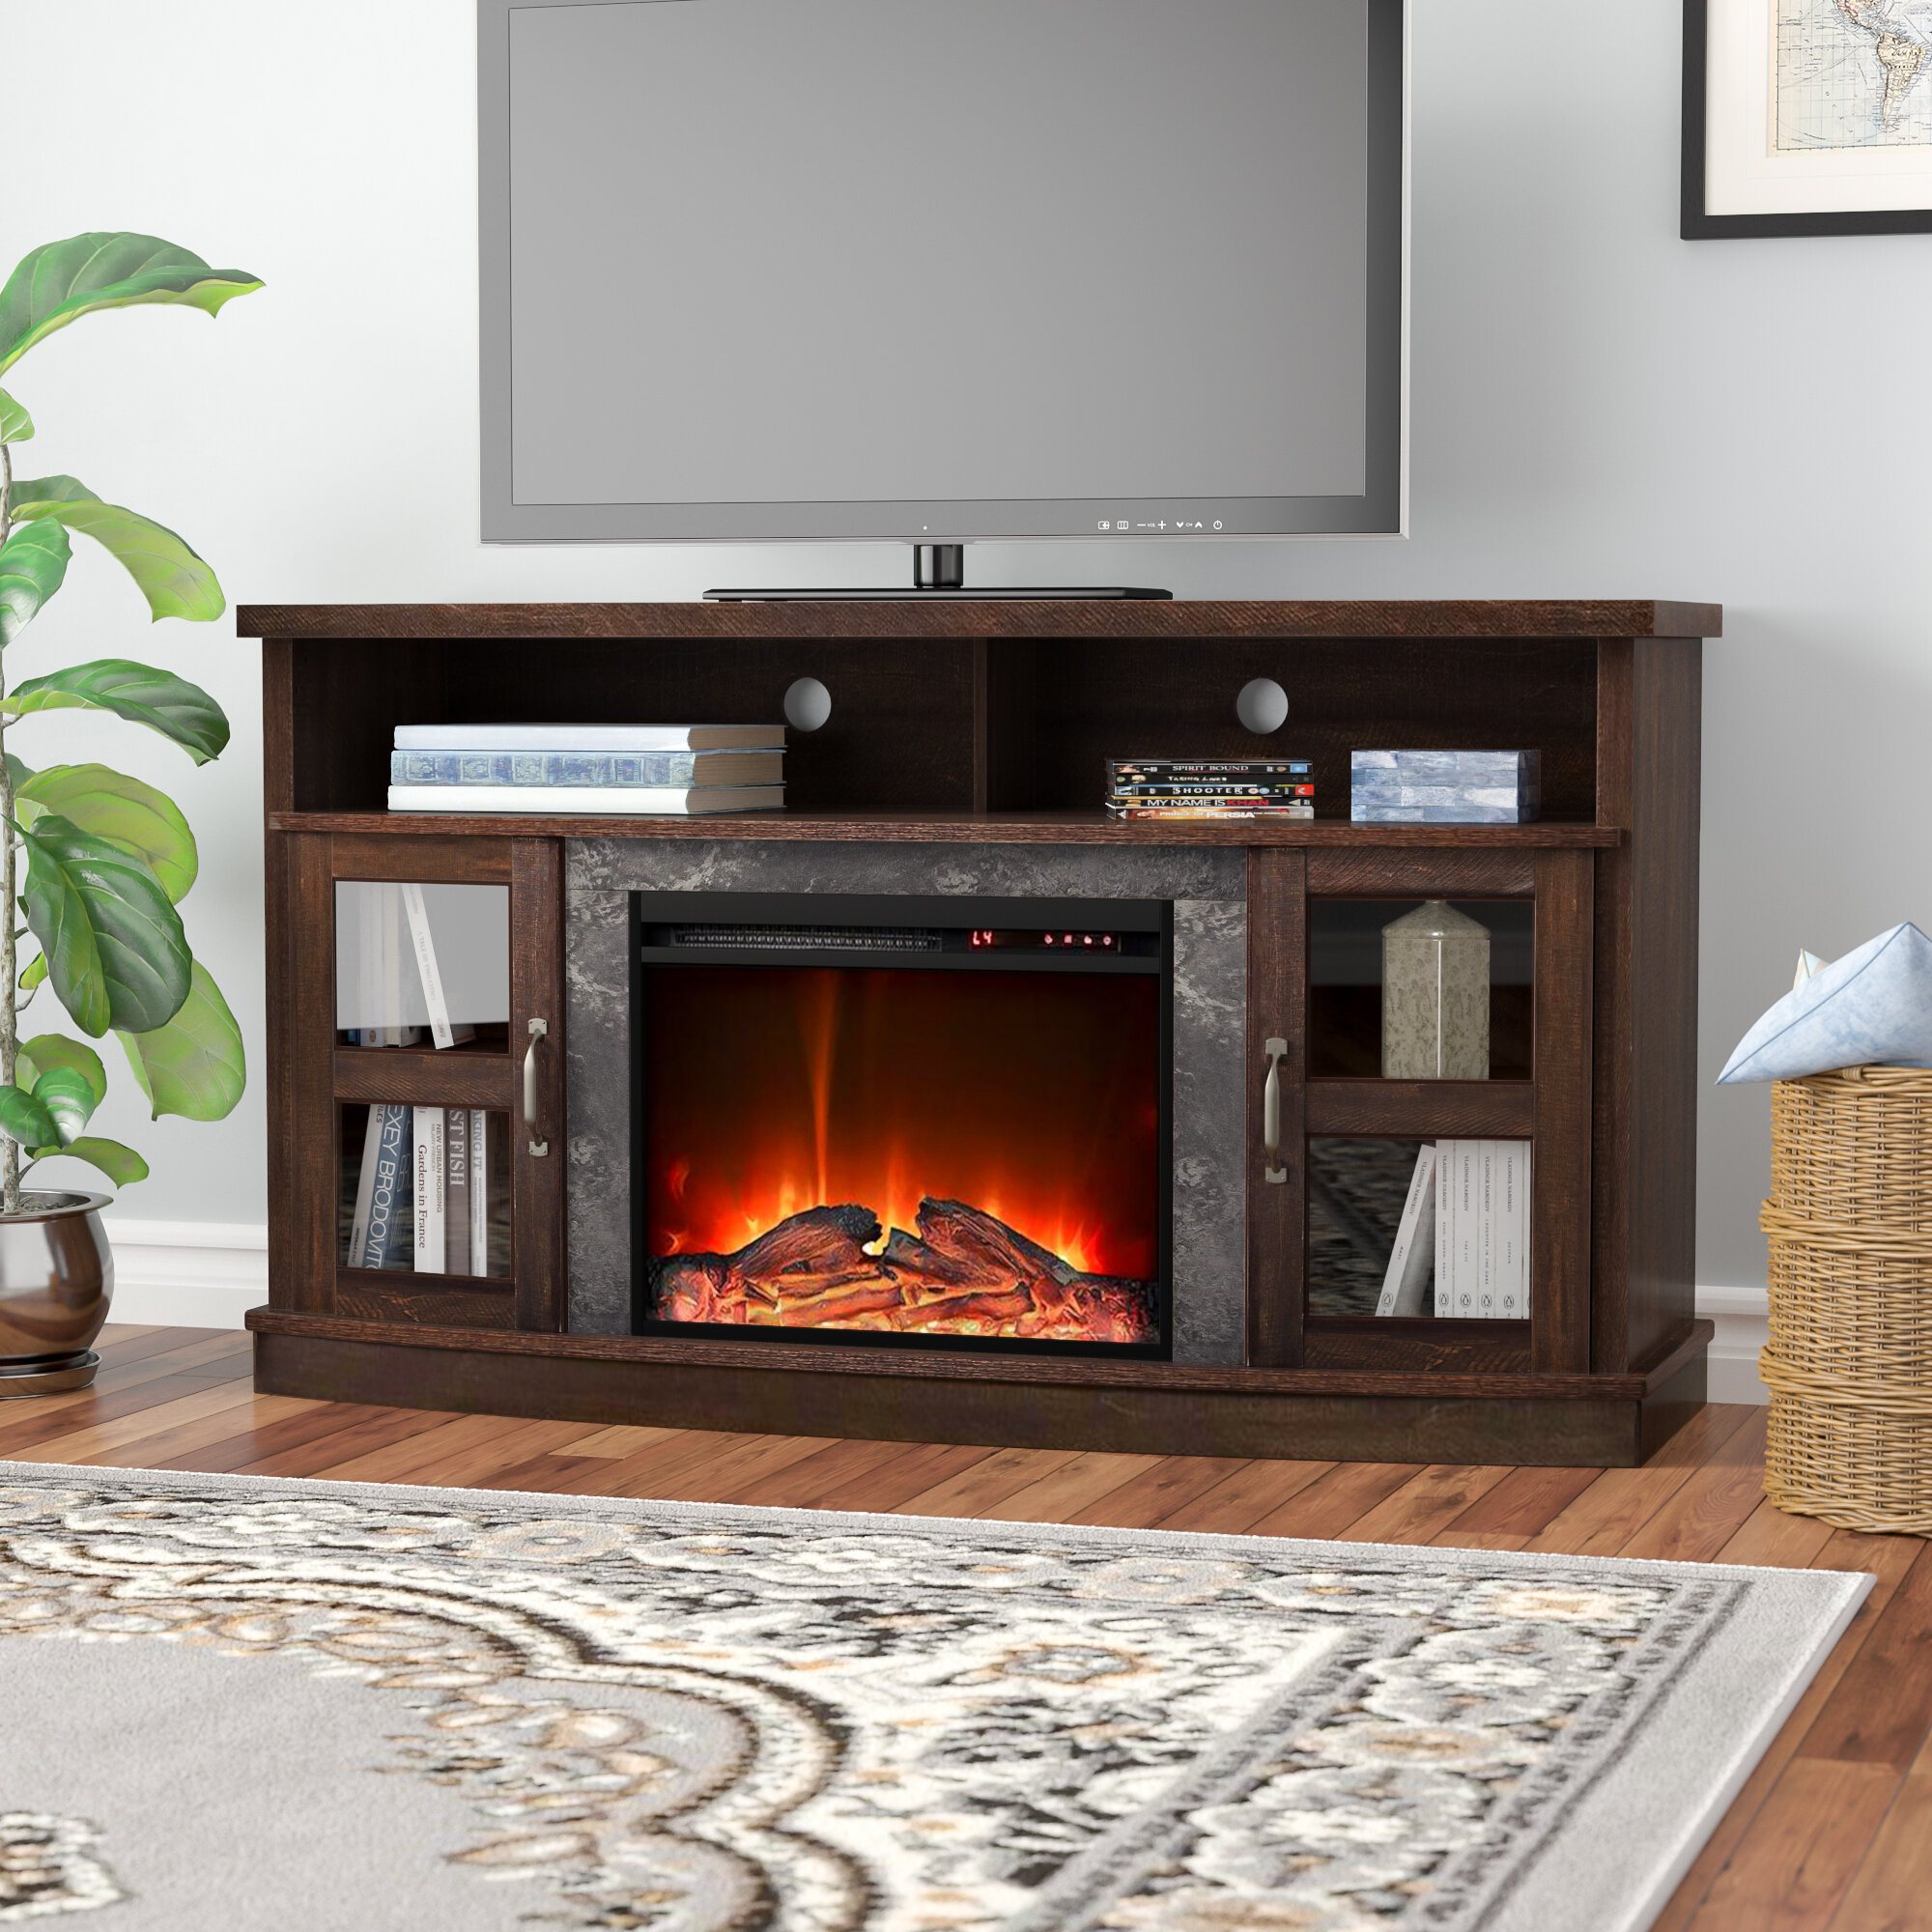 Darby Home Co Schuyler Tv Stand For Tvs Up To 60 With Electric Fireplace Included Reviews